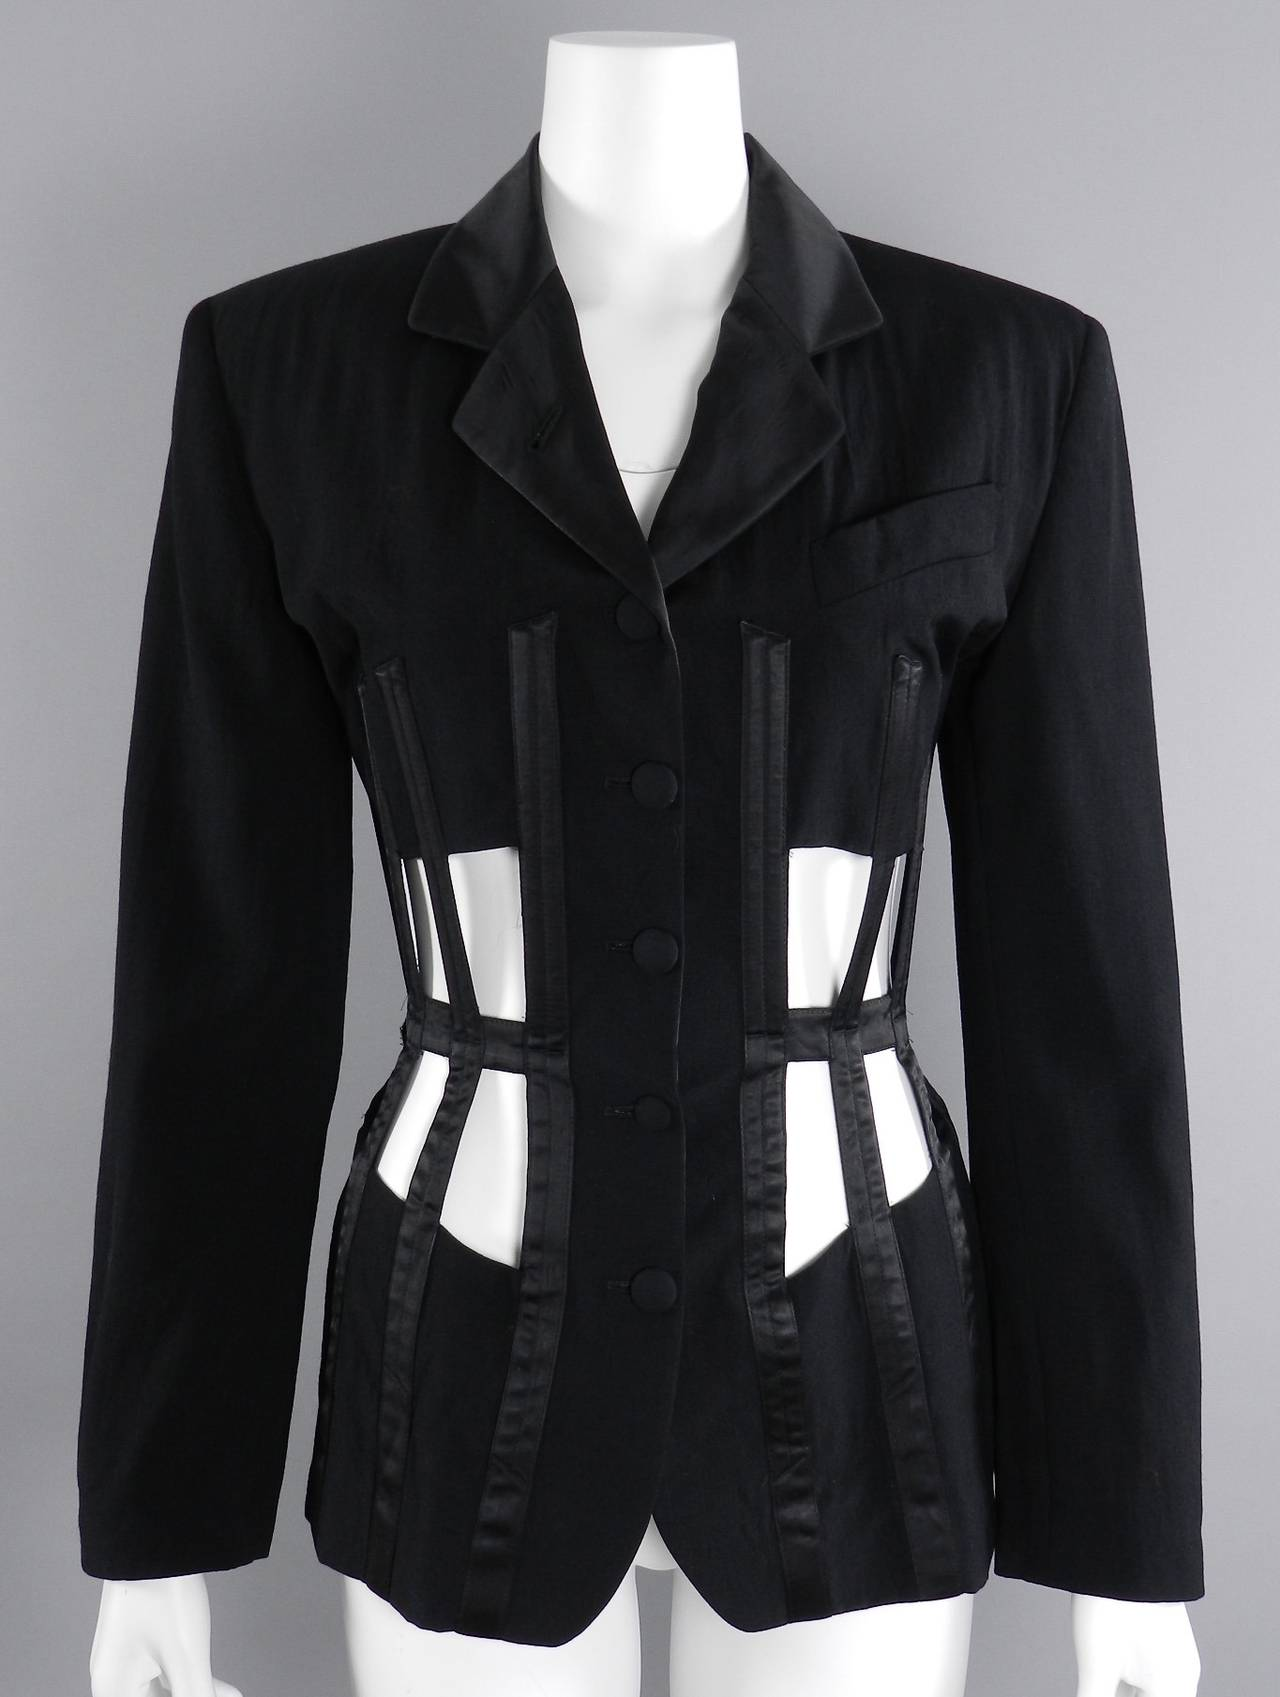 Jean Paul Gaultier Iconic 1989 Black Corset Cage Jacket 10